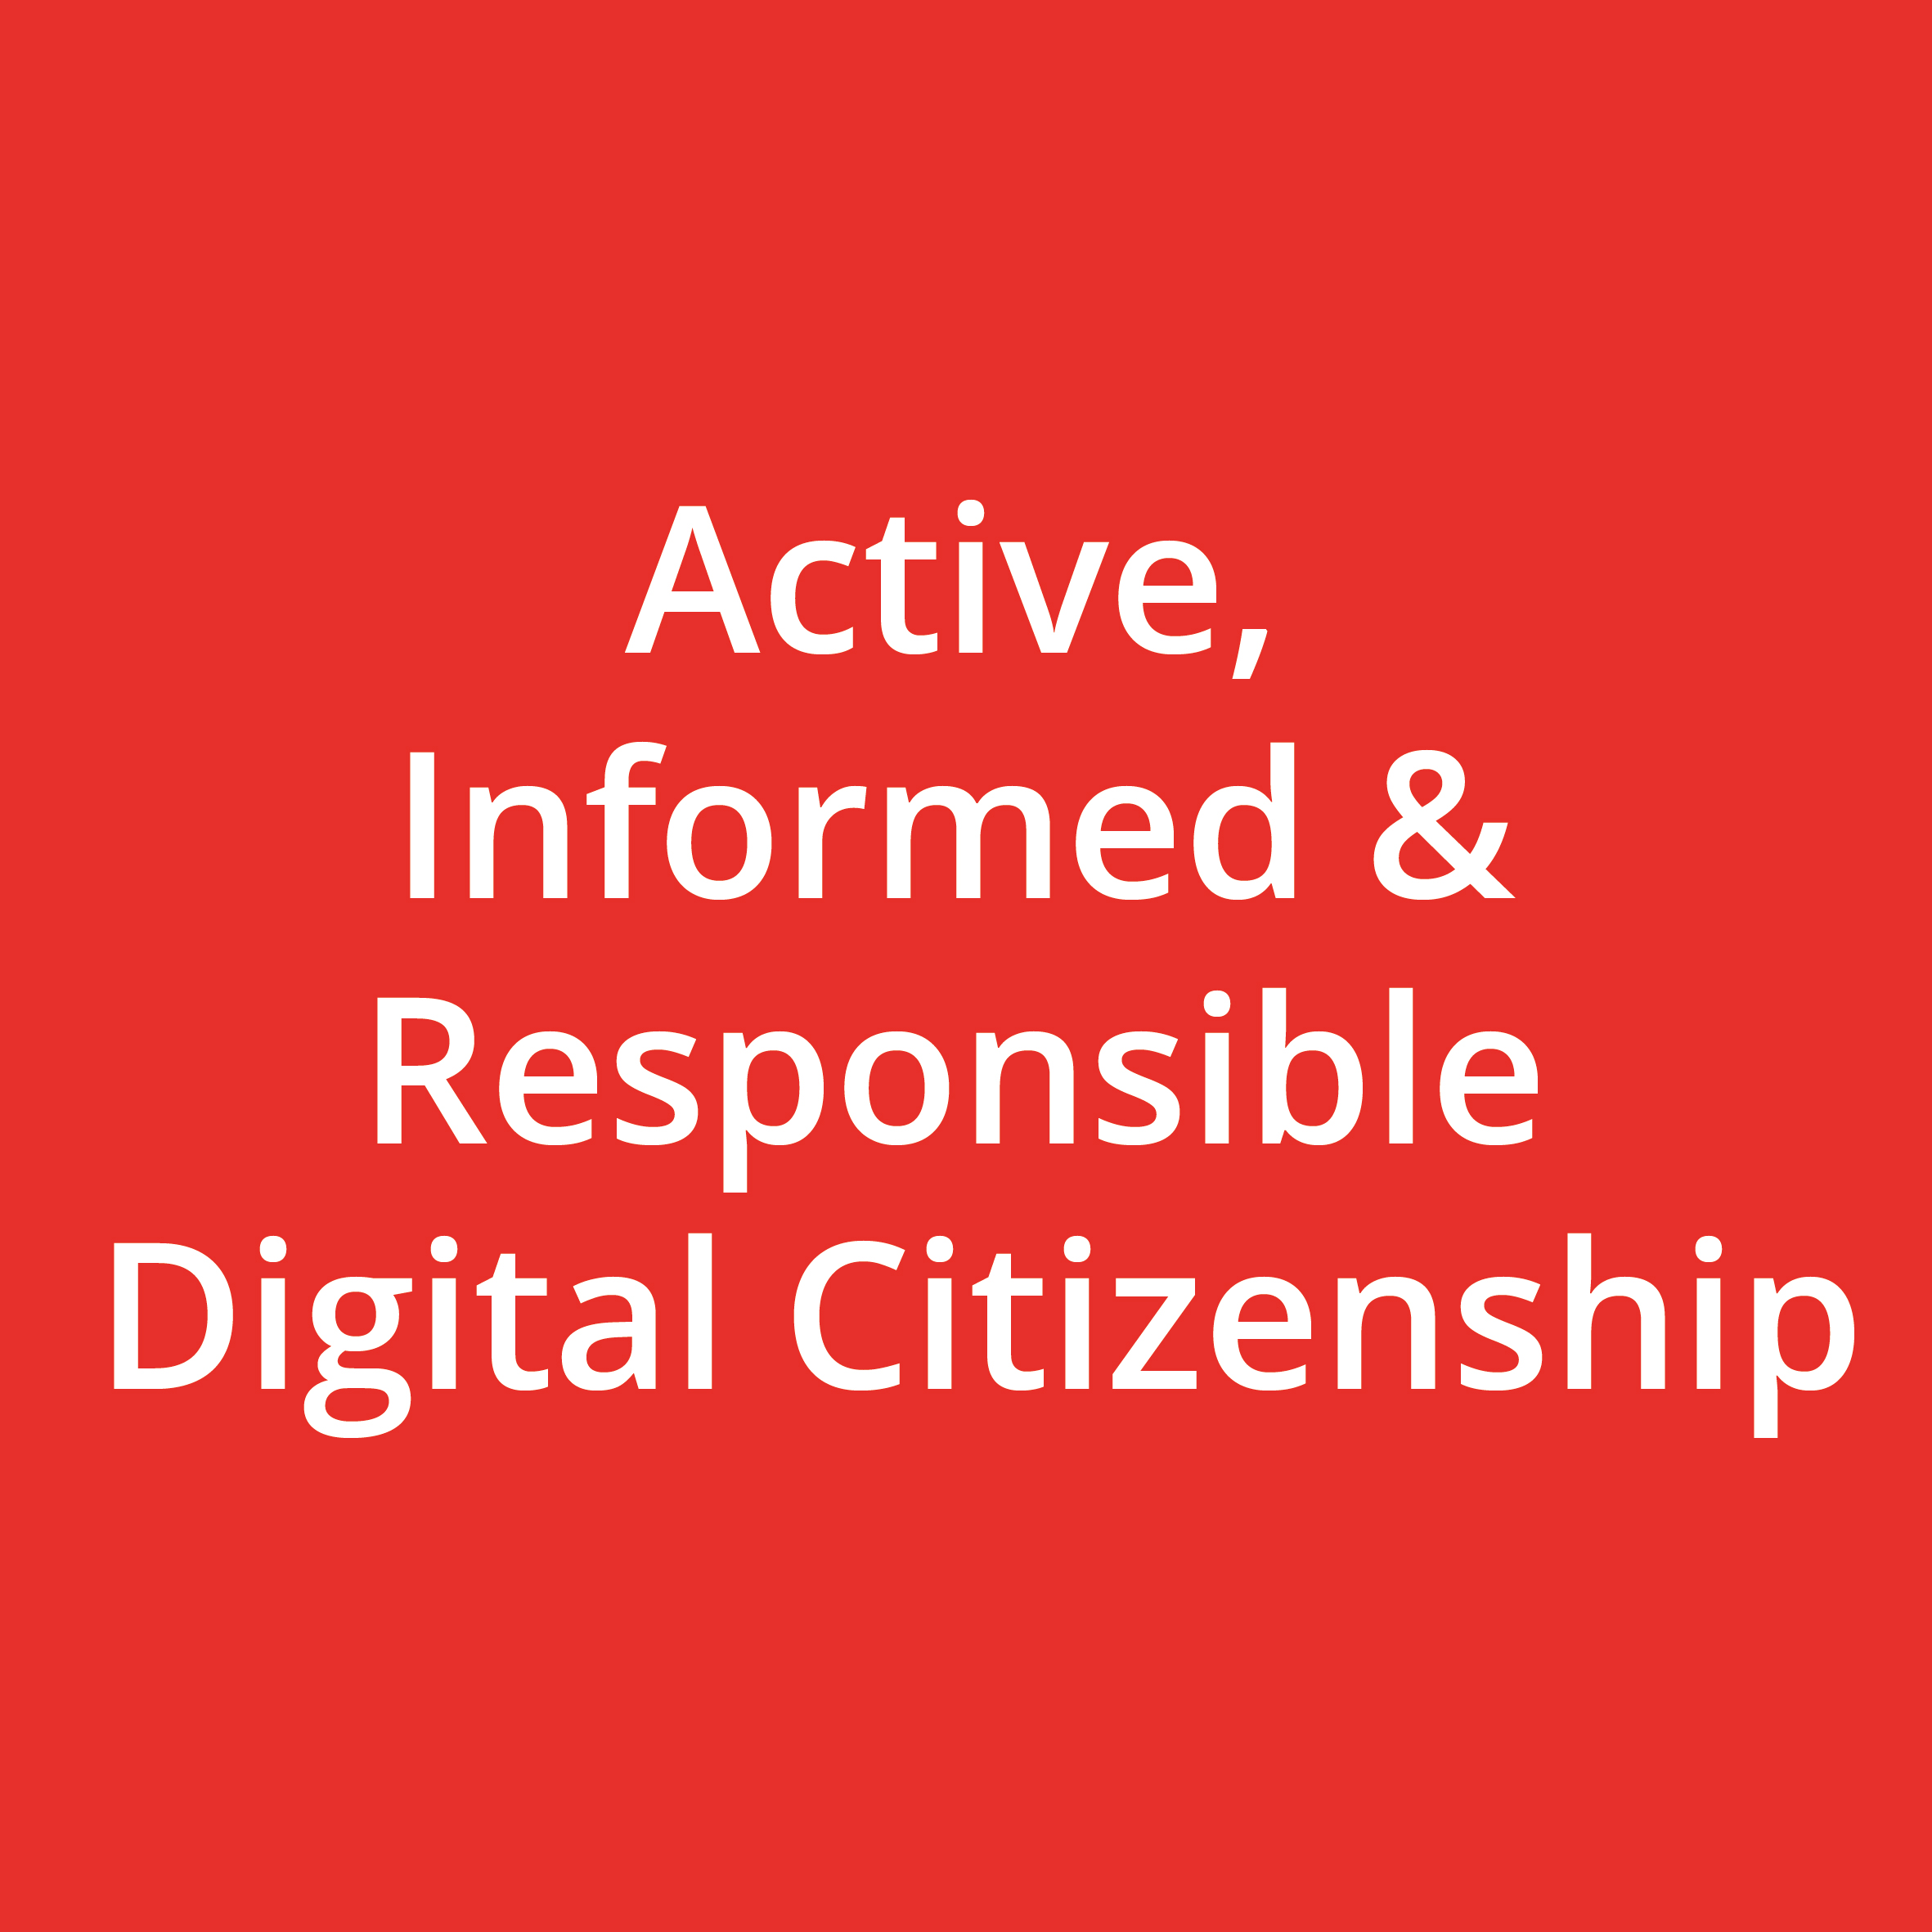 Active, Informed & Responsible Digital Citizenship